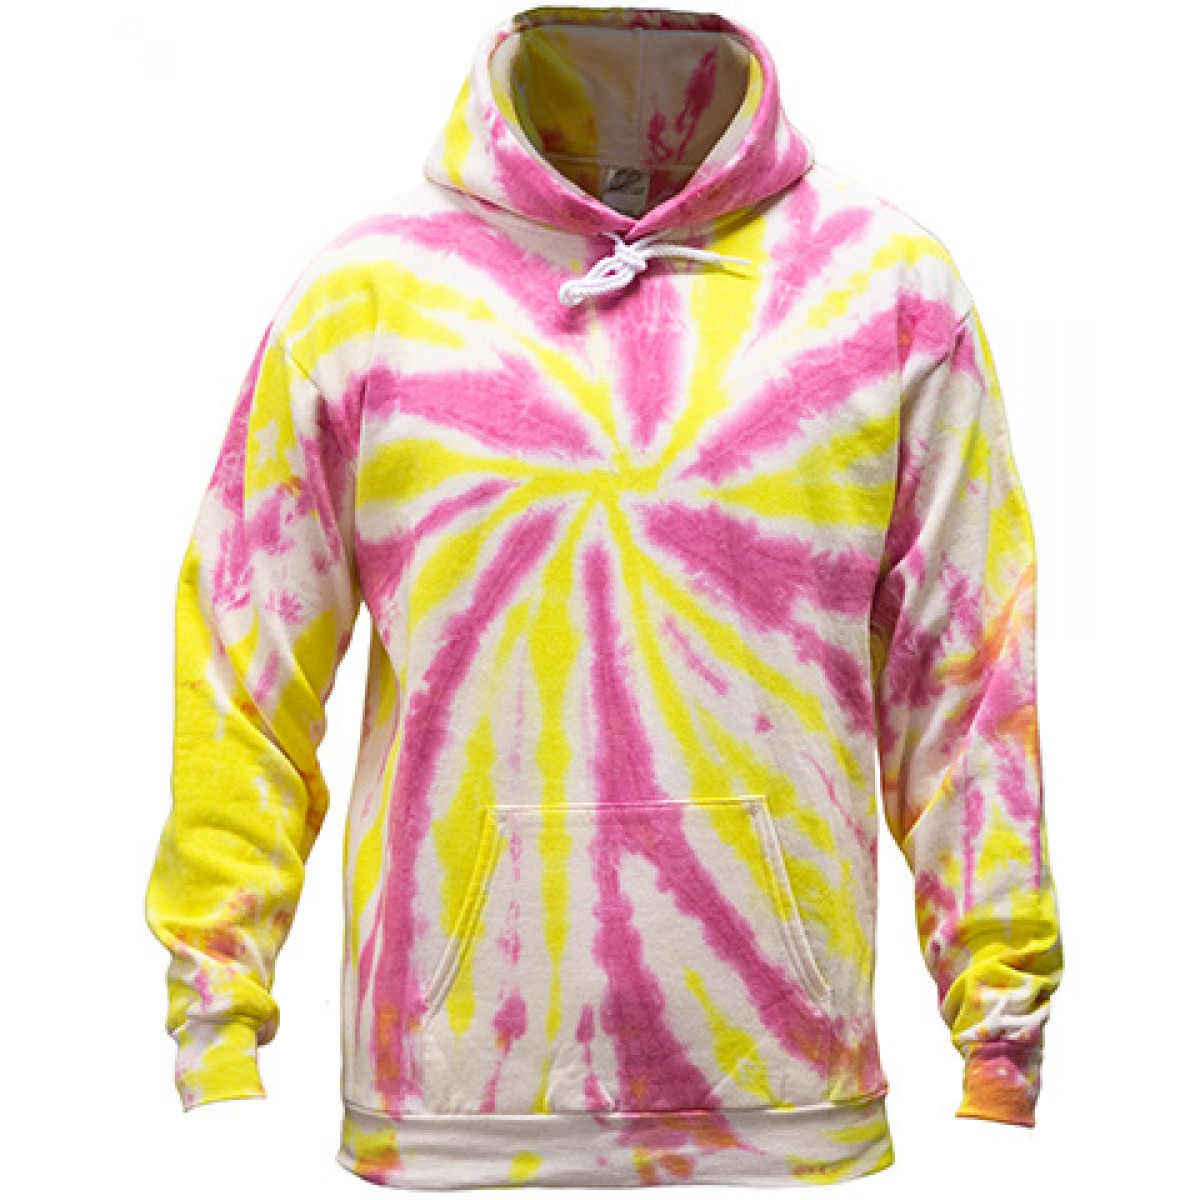 Tie-Dye Pullover Hooded Sweatshirt-Pink/Yellow-YL